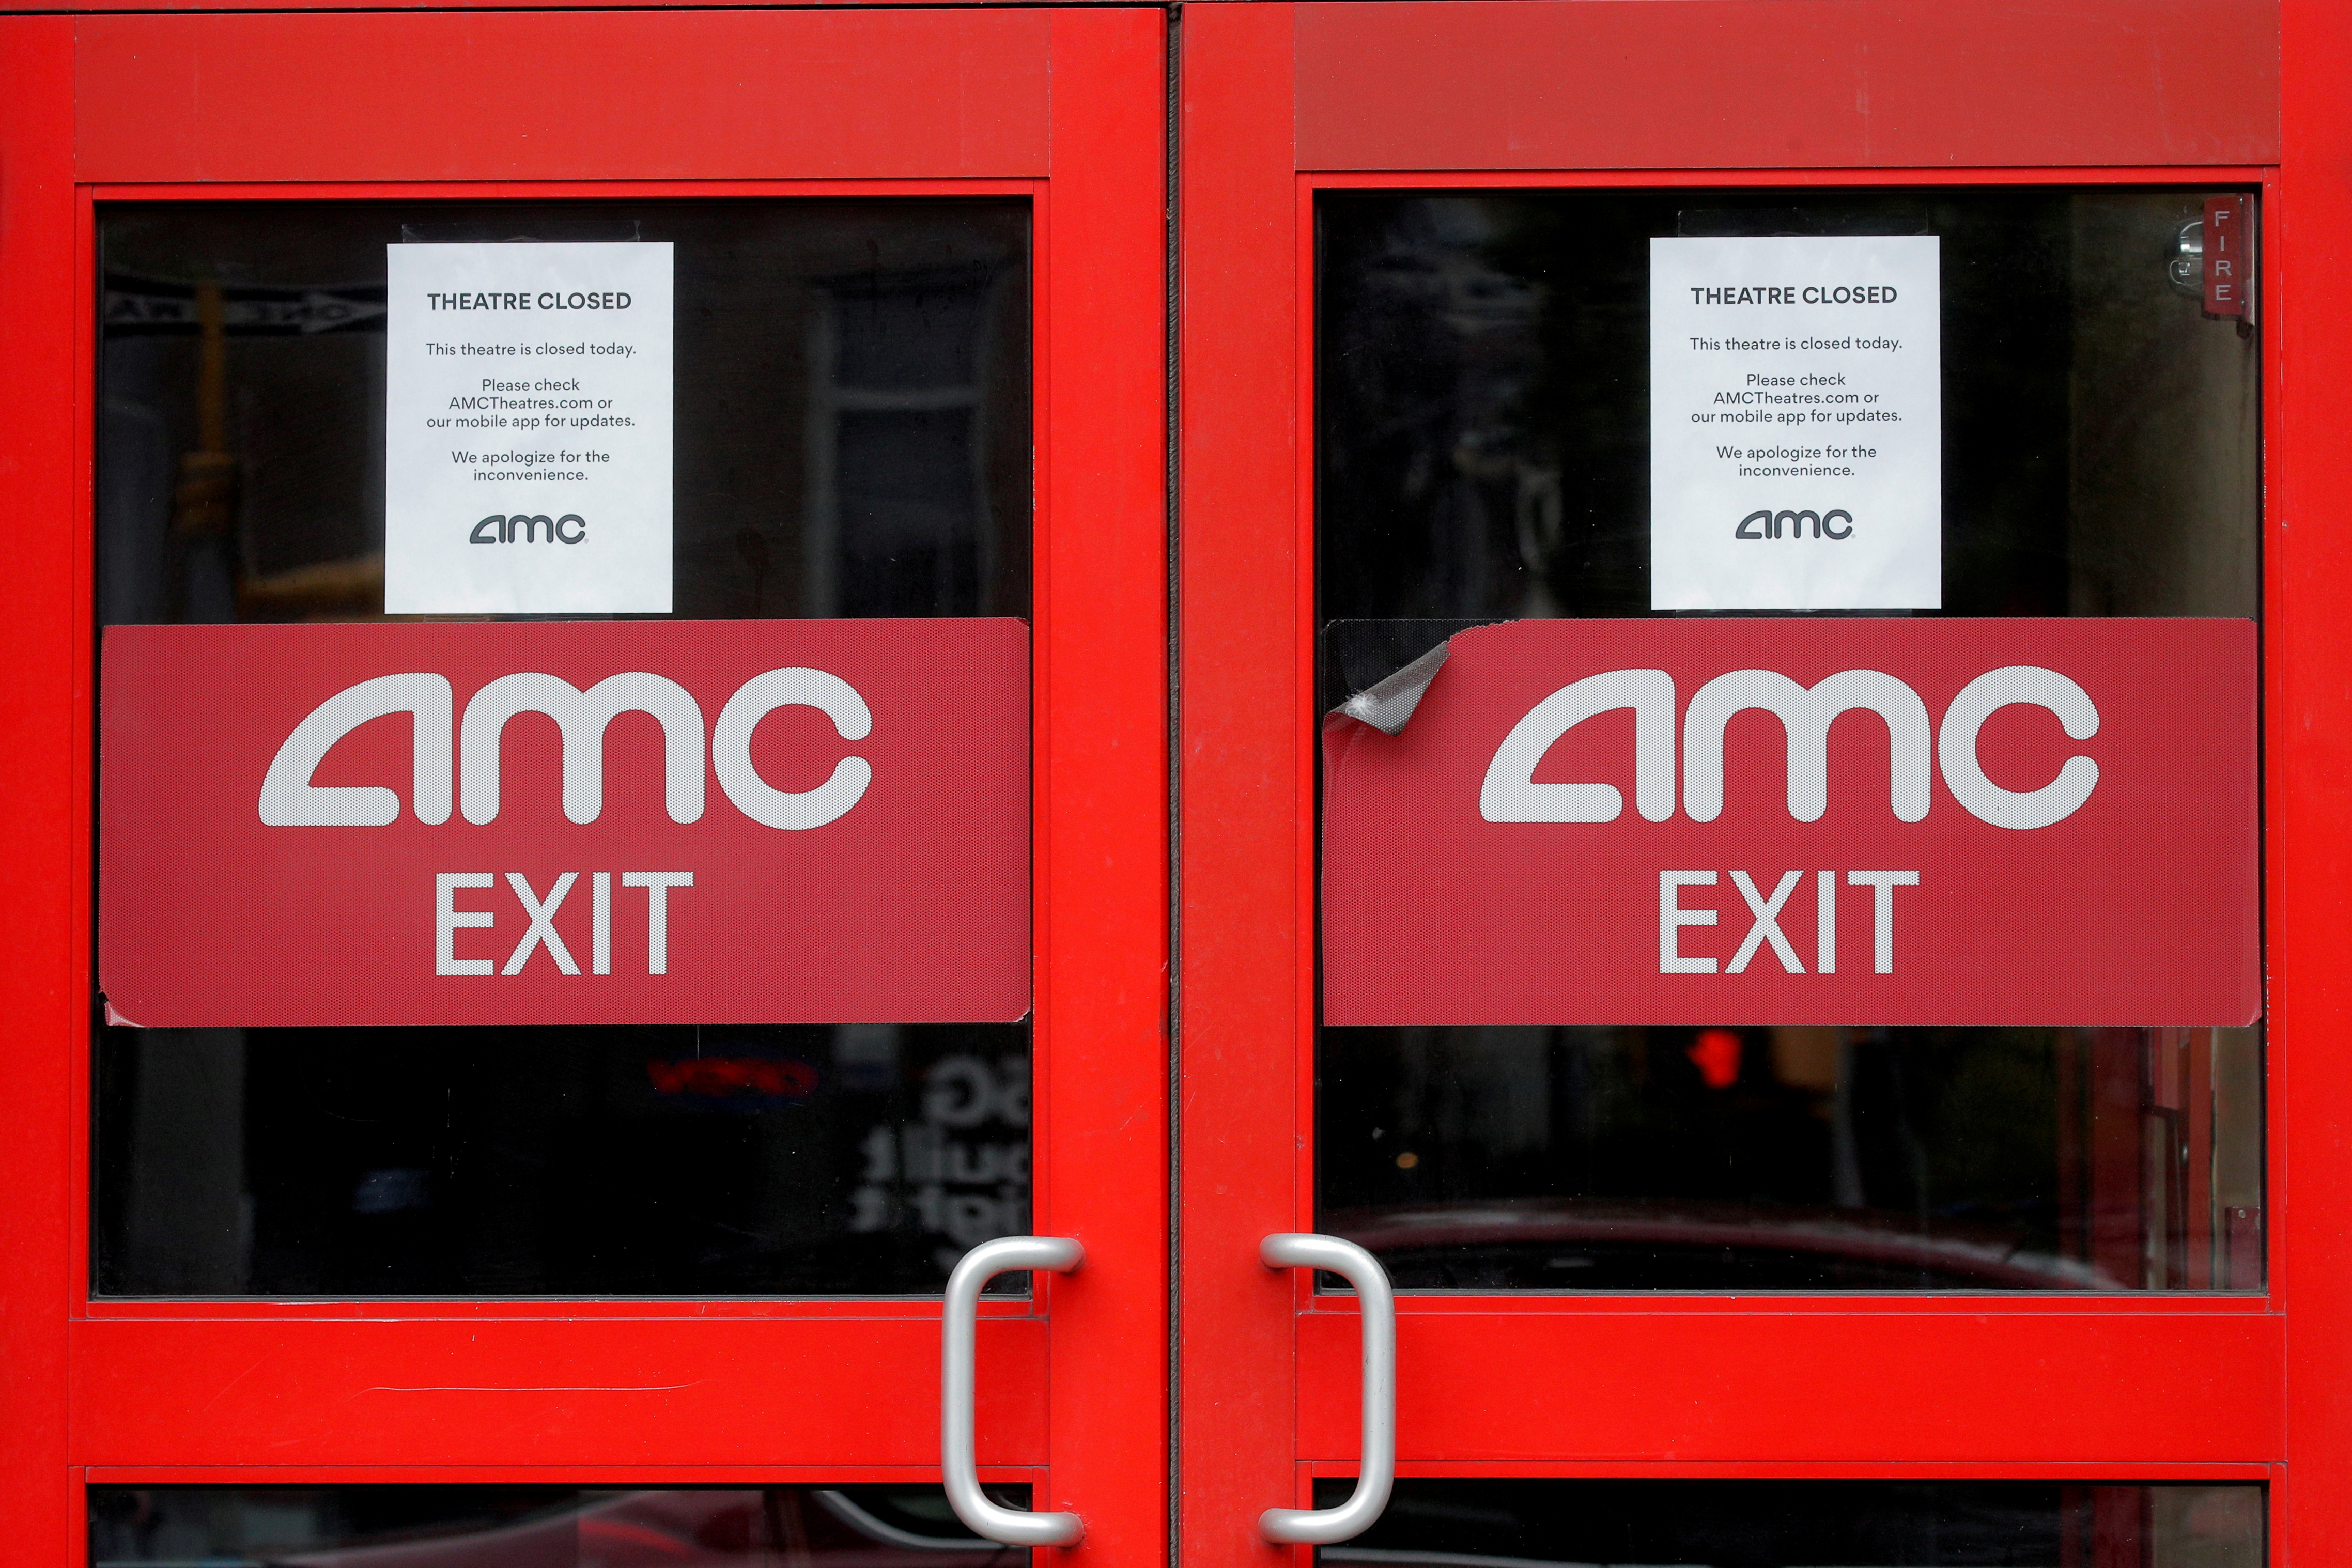 Closed signs are seen on an AMC Theatre during the outbreak of the coronavirus disease (COVID-19), in New York City, U.S., April 29, 2020. REUTERS/Brendan McDermid/File Photo